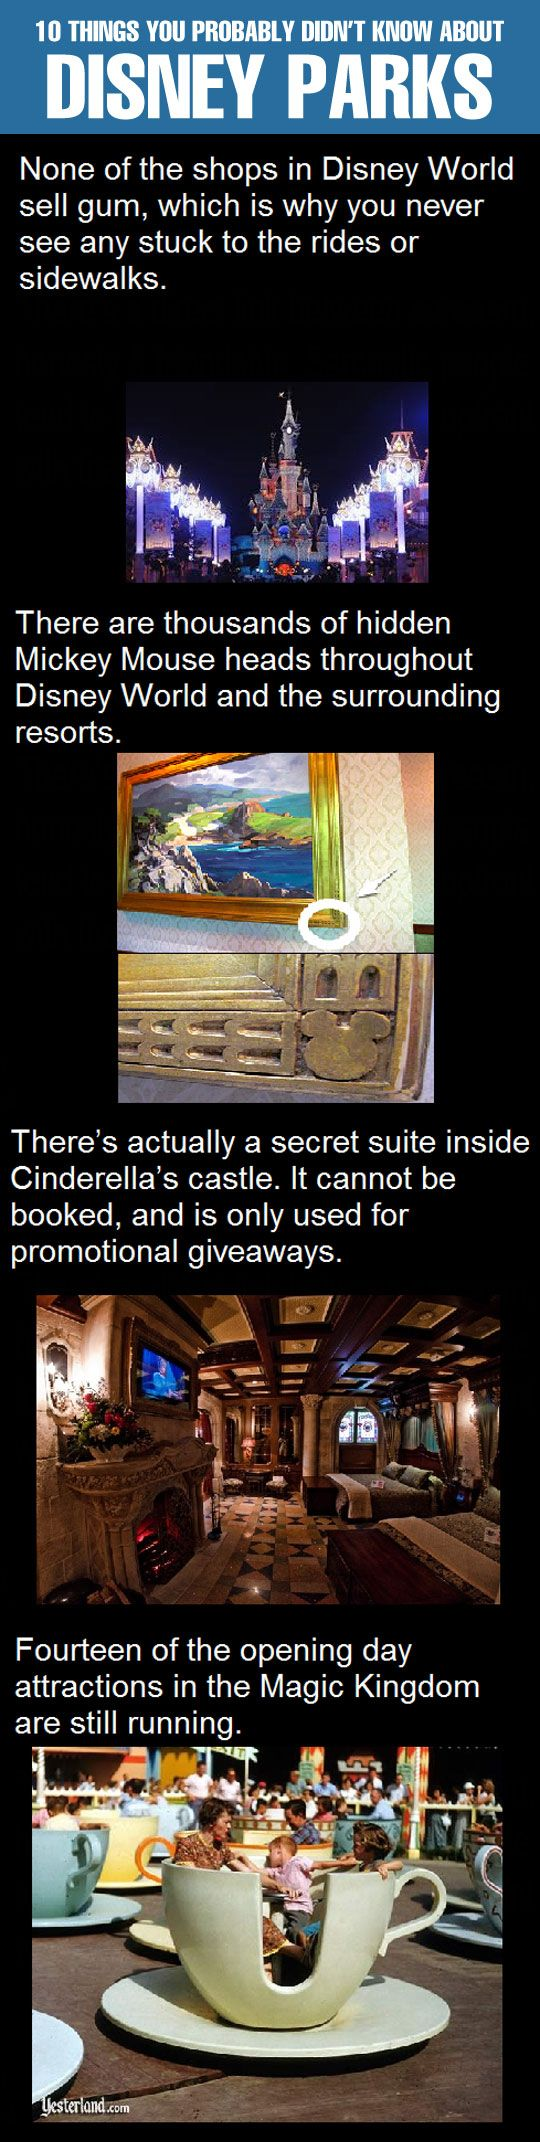 cool-facts-Disney-Parks